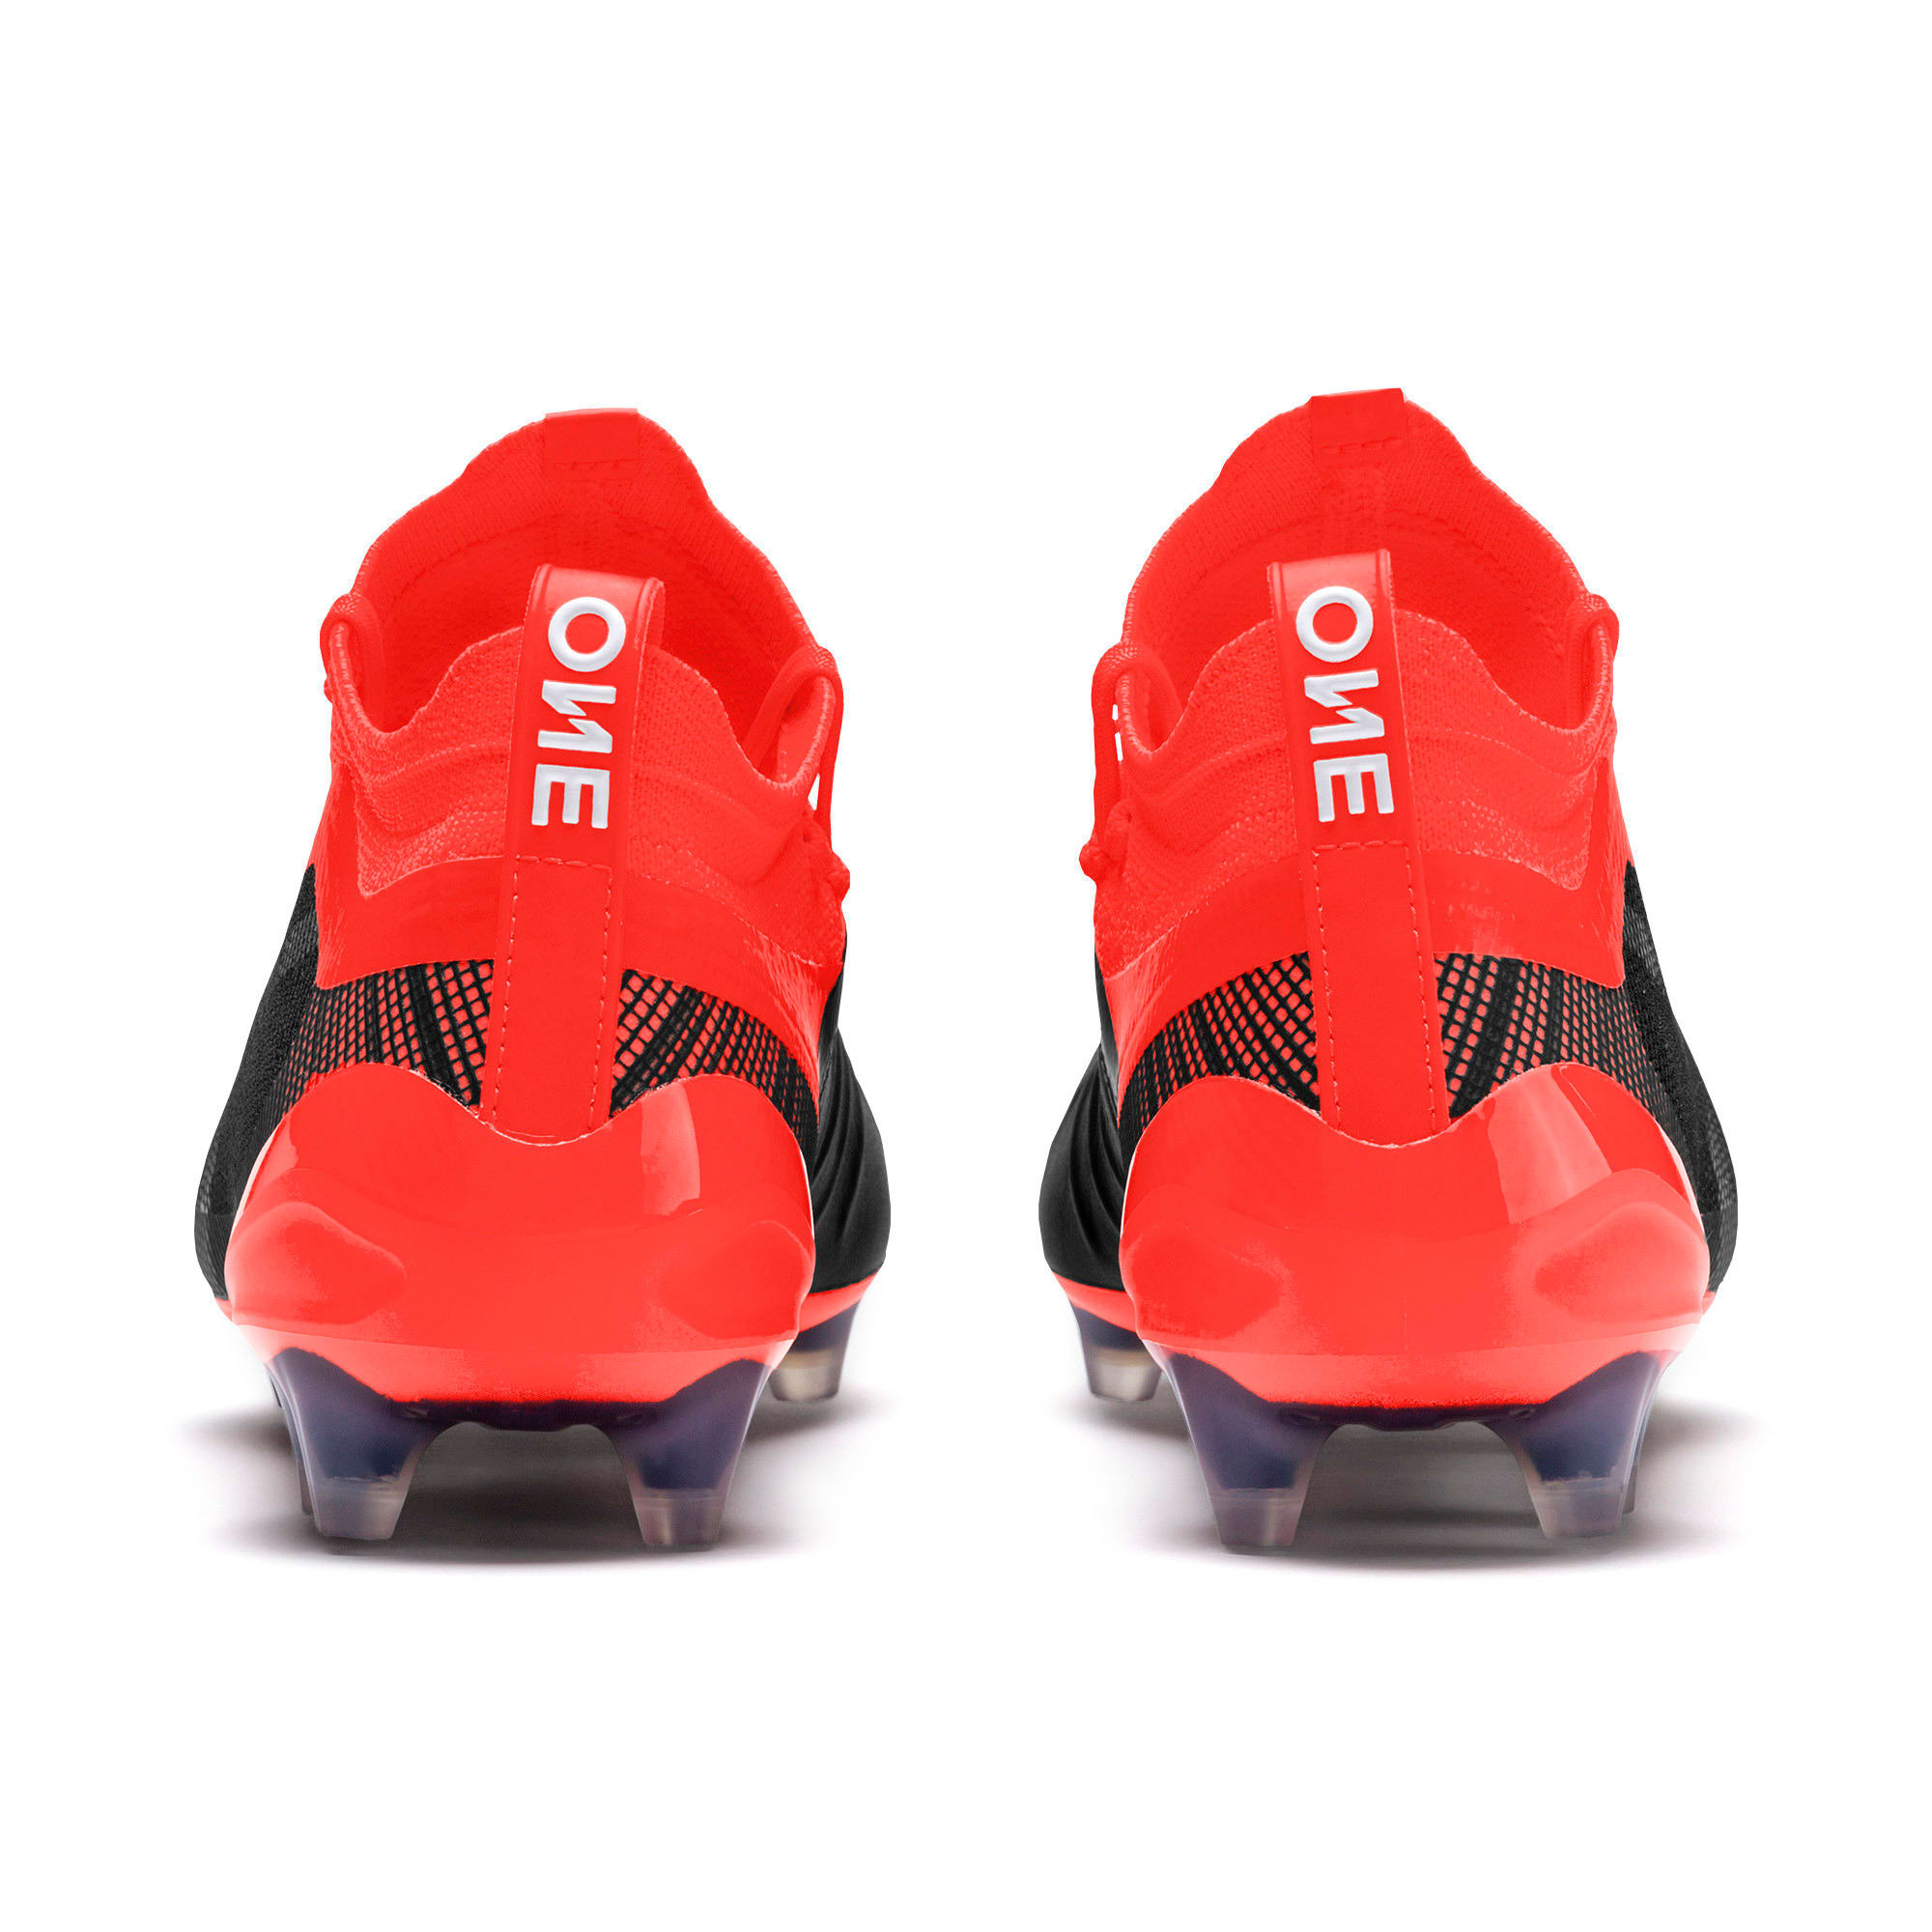 Thumbnail 5 of PUMA ONE 5.1 evoKNIT FG/AG Men's Football Boots, Black-Nrgy Red-Aged Silver, medium-IND